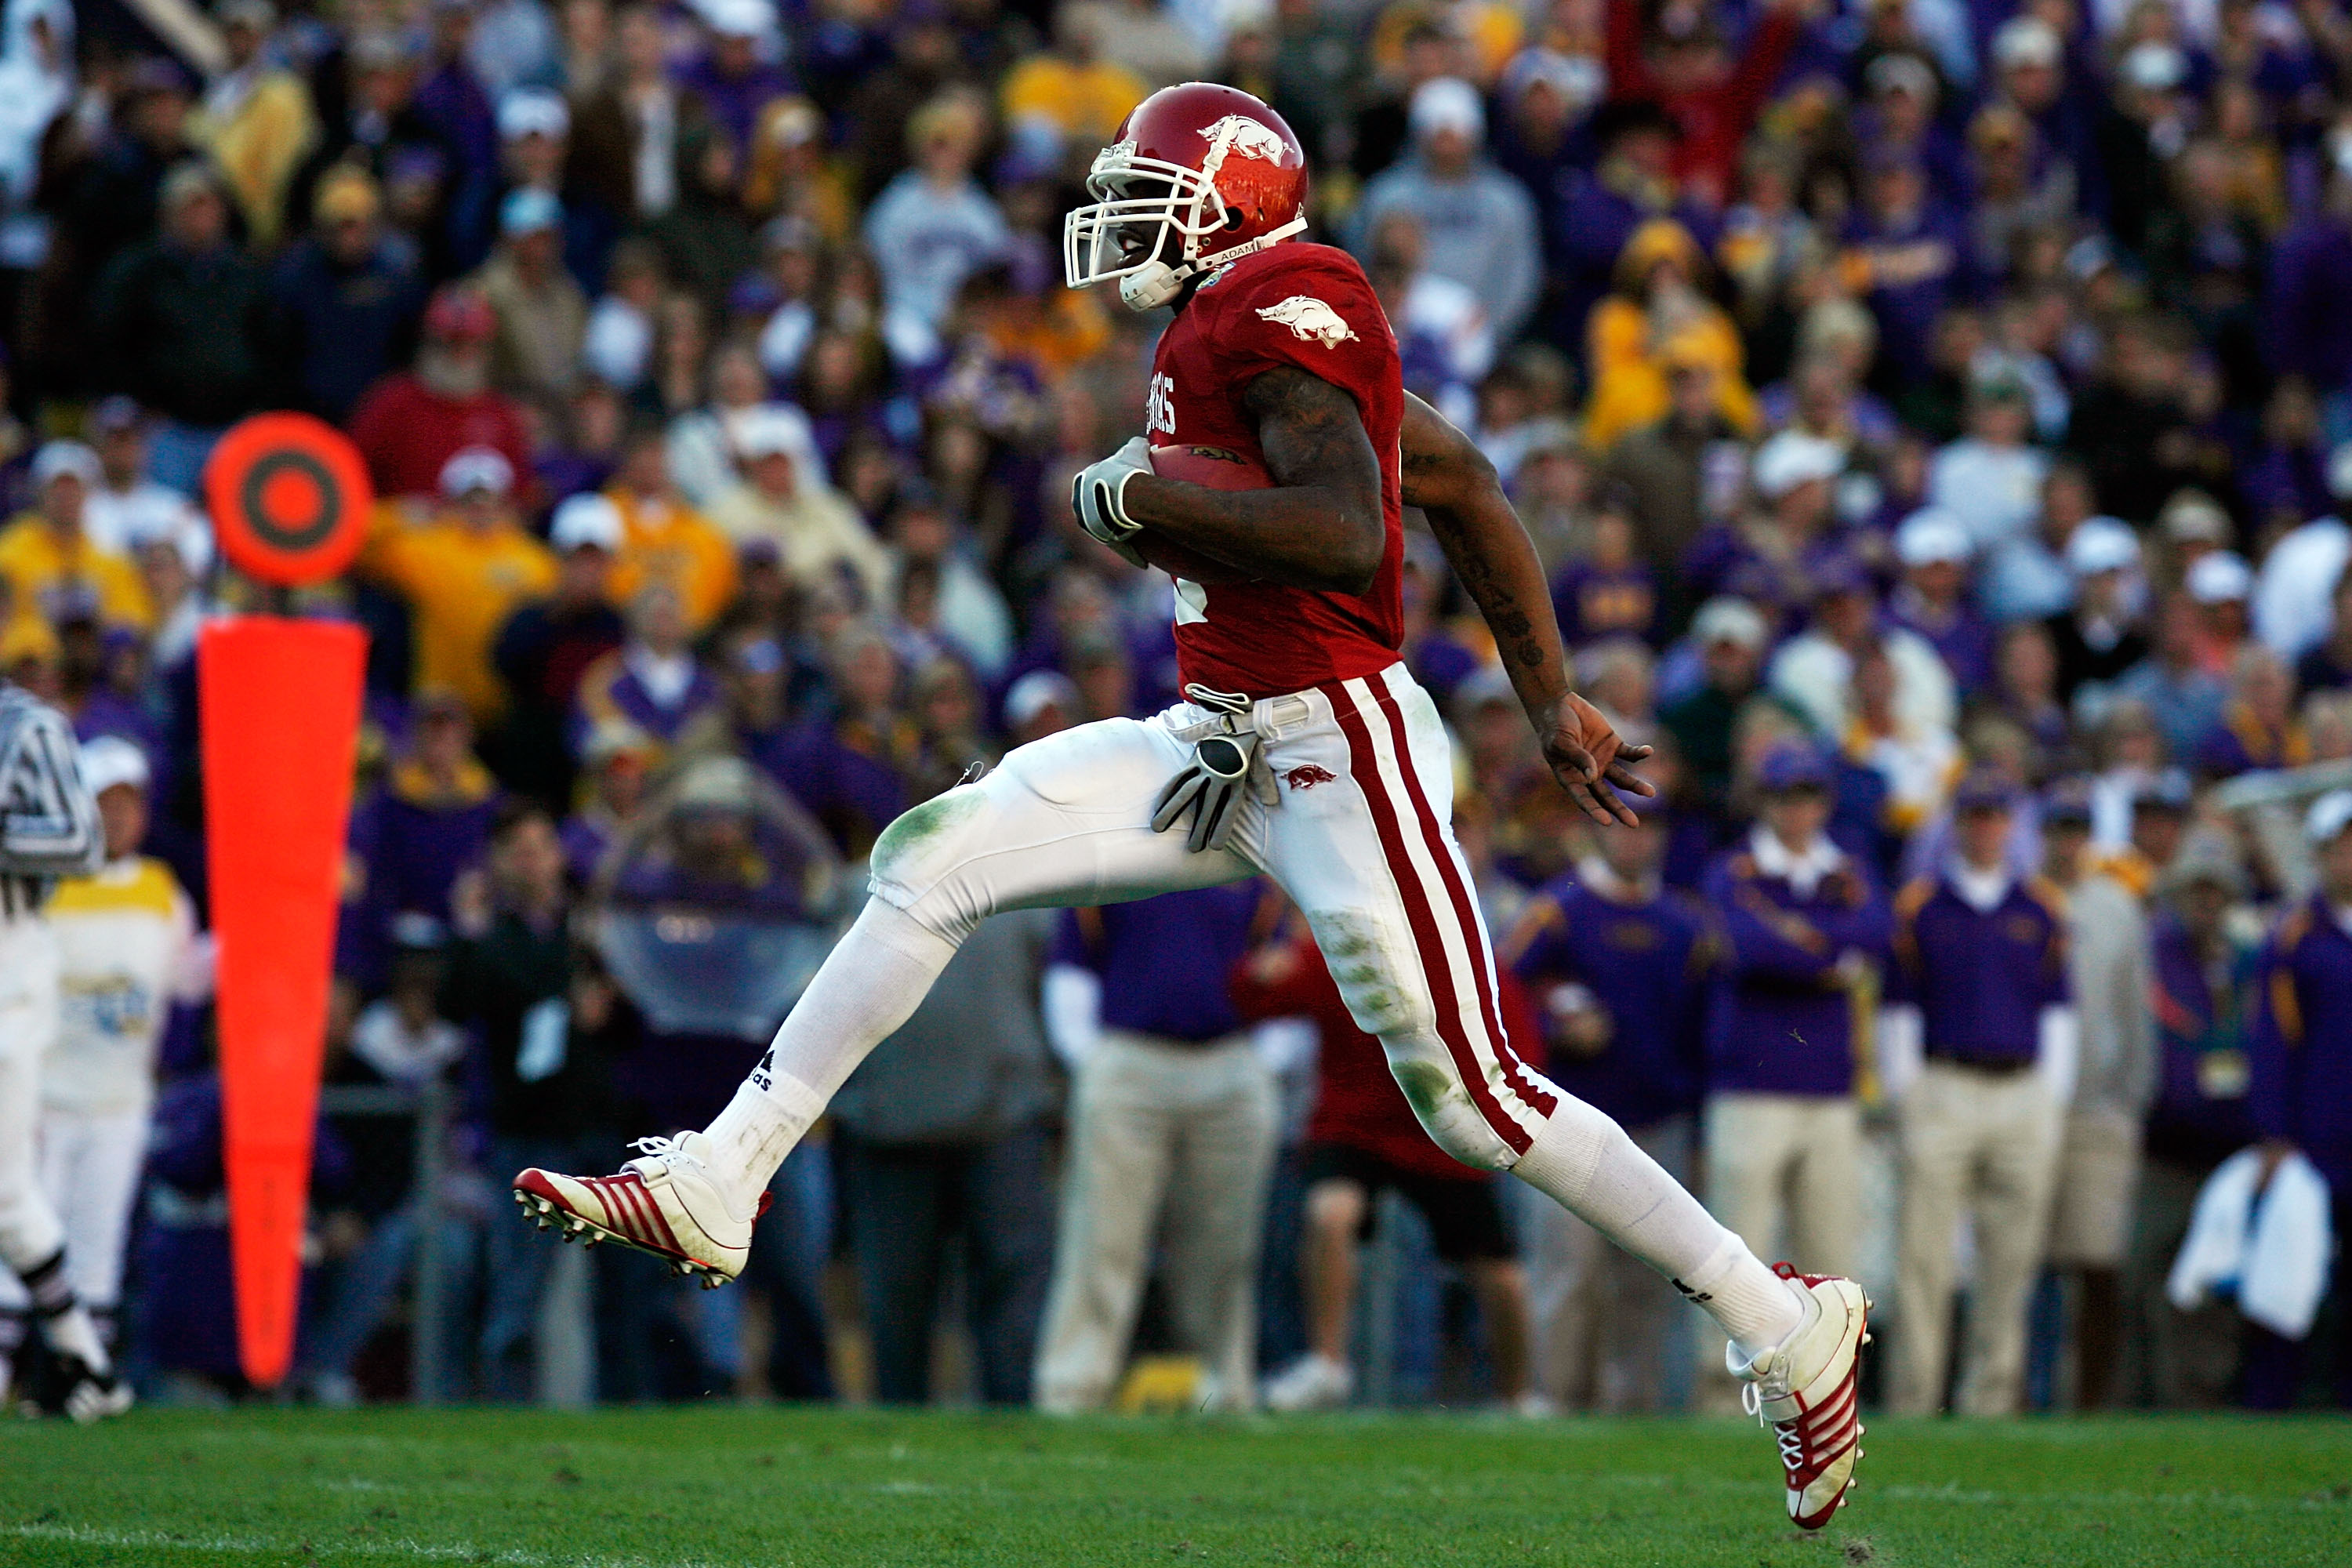 BATON ROUGE, LA - NOVEMBER 23:  Darren McFadden #5 of the Arkansas Razorbacks runs for a touchdown against the Louisiana State University Tigers to score a touchdown at Tiger Stadium November 23, 2007 in Baton Rouge, Louisiana. The Razorbacks defeated the